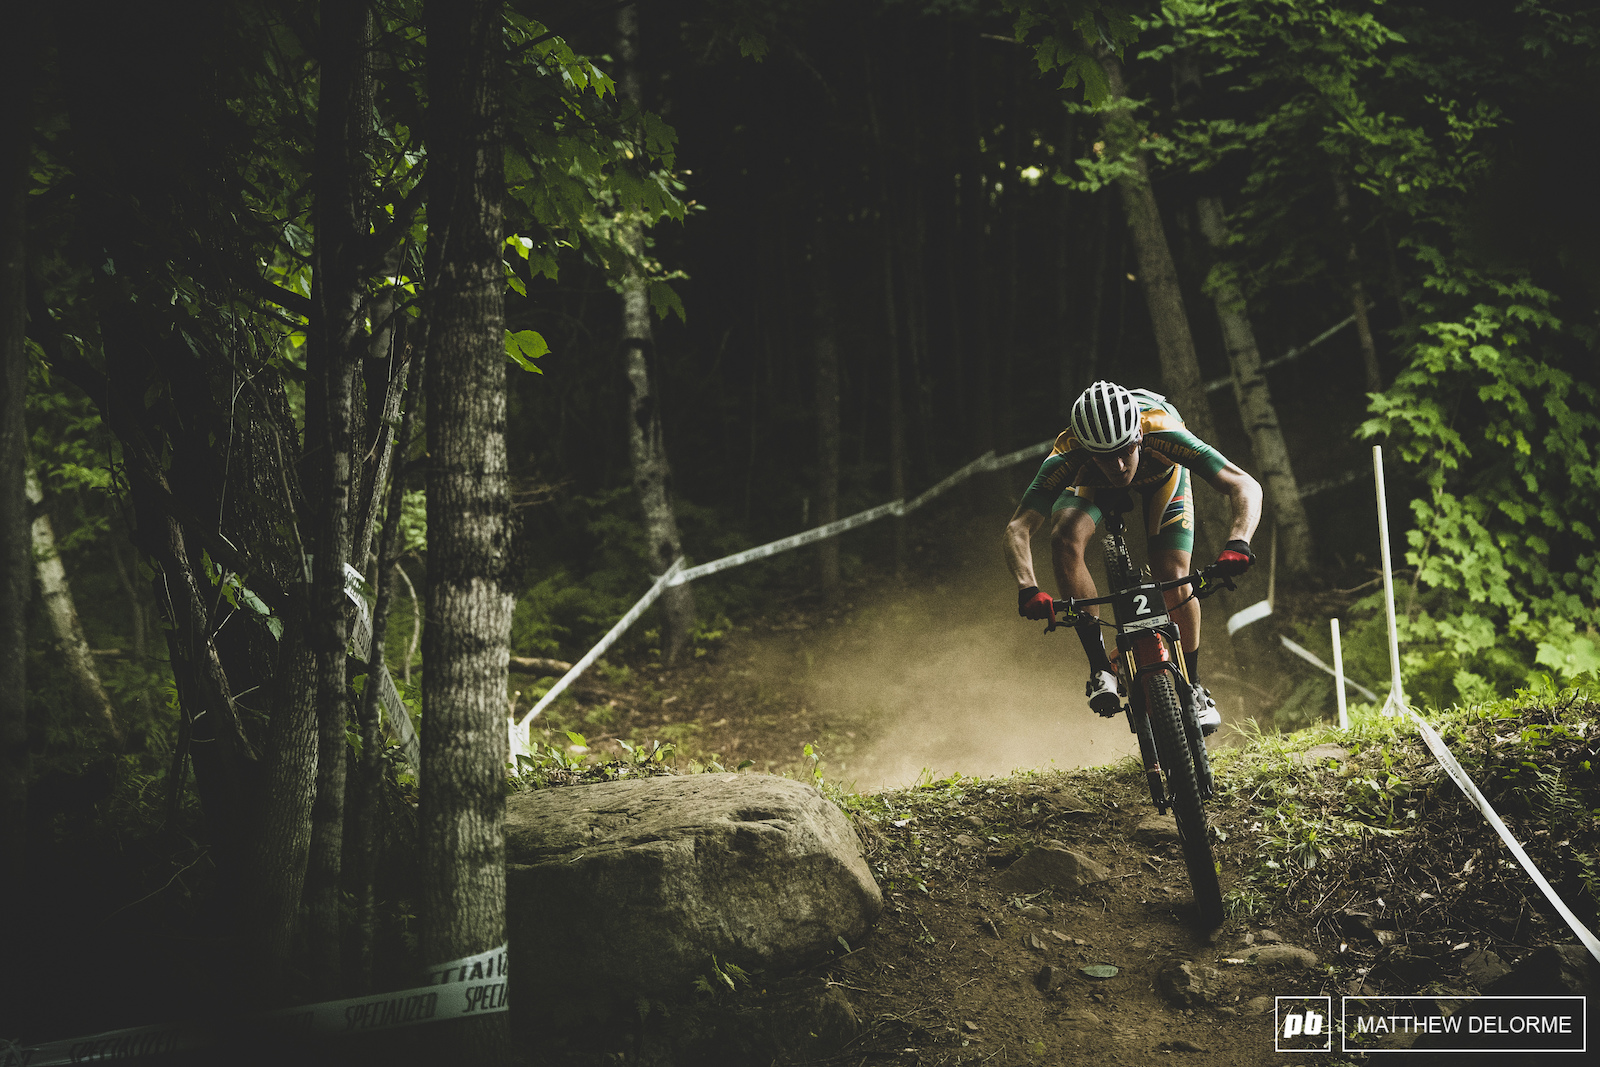 Alan Hatherly on his was to world champion in eMTB Worlds.